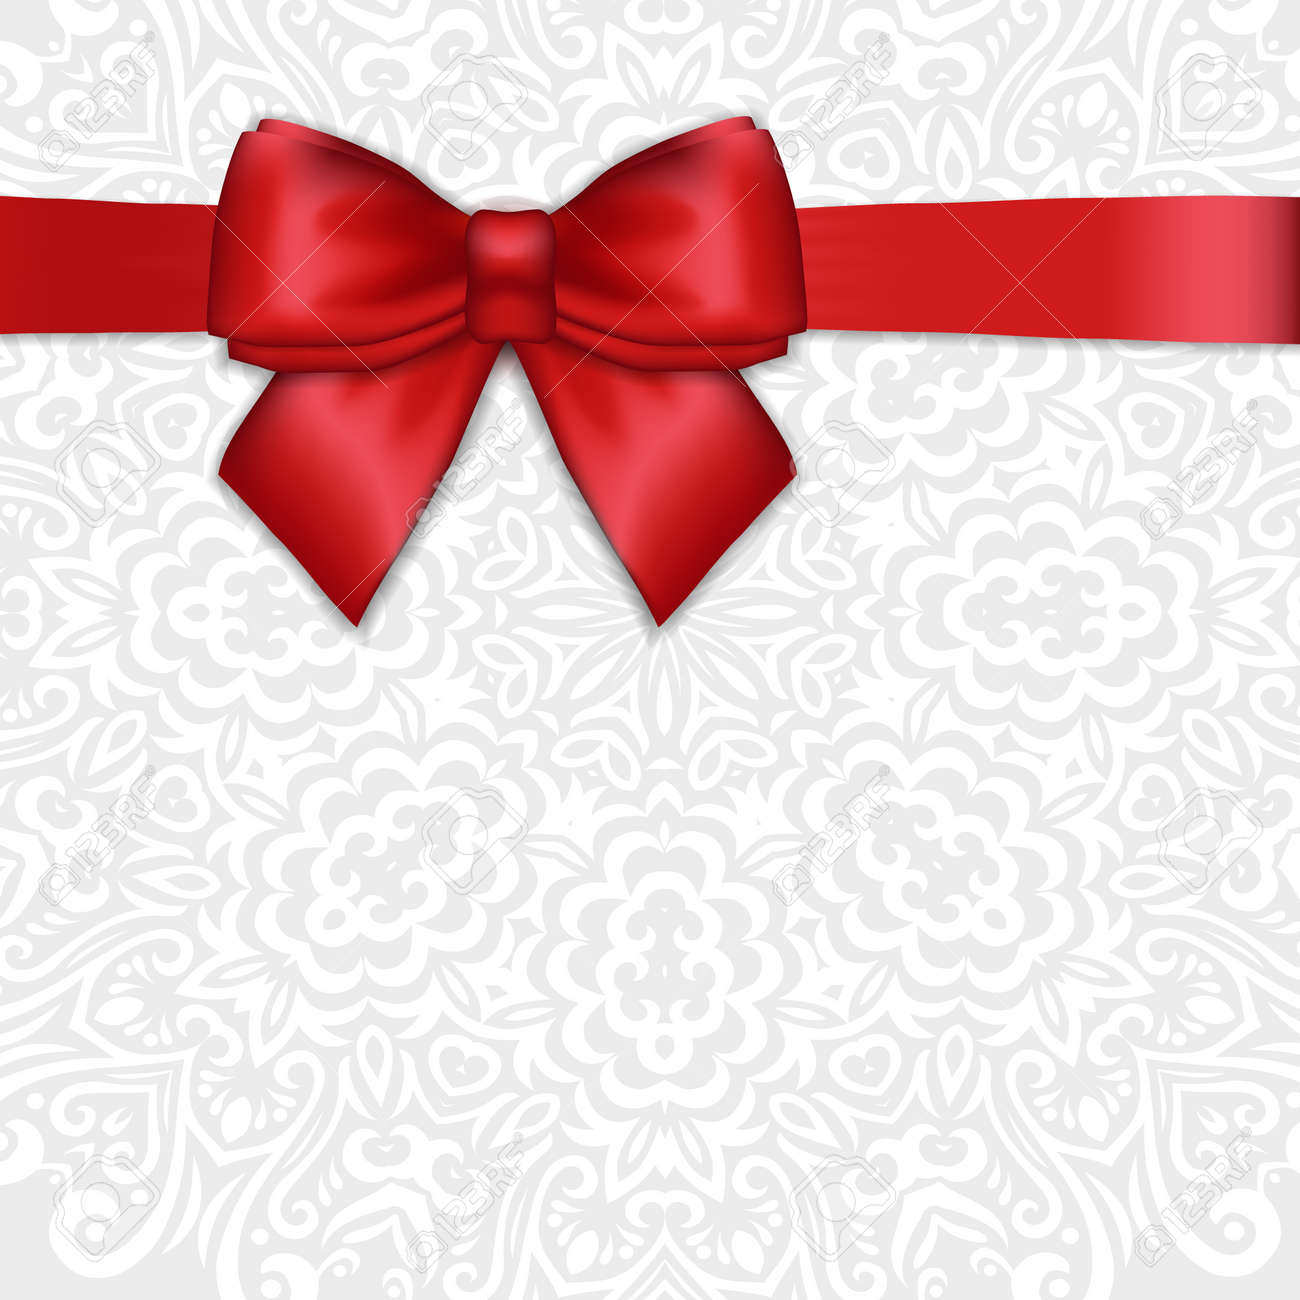 Shiny Holiday Red Satin Ribbon Bow On White Lacy Ornamental Background Vector Template For Greetings